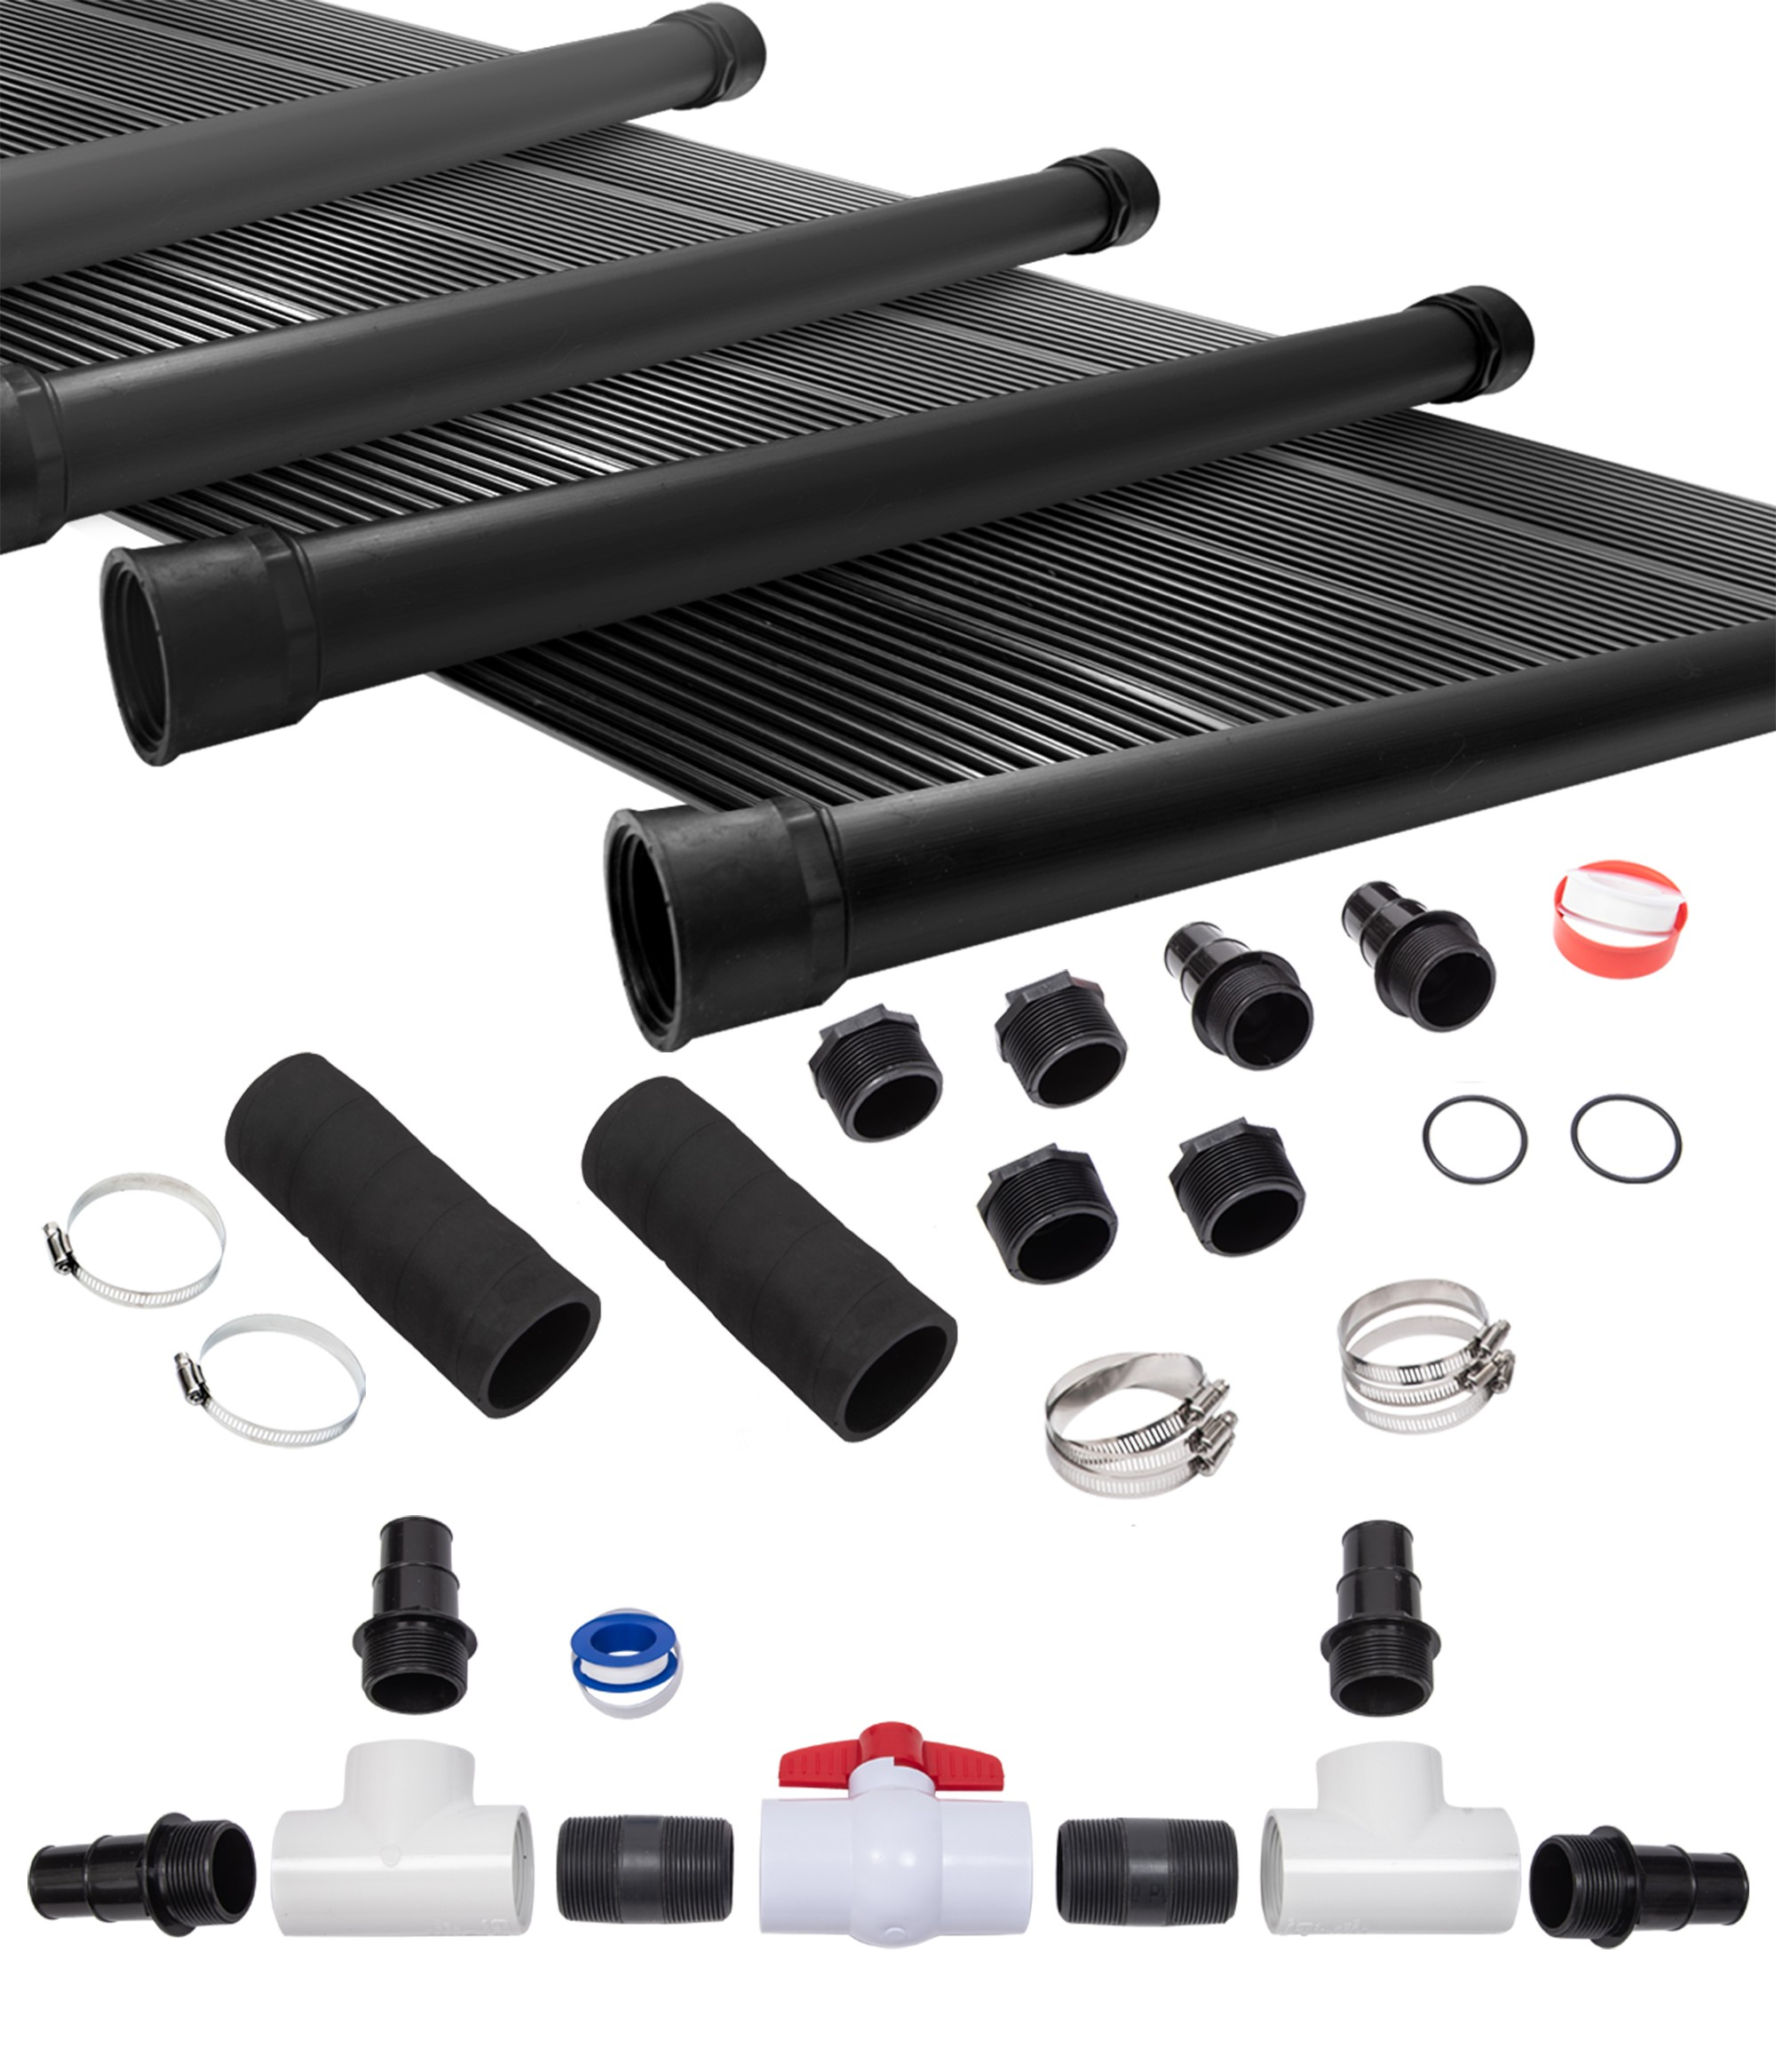 6-2\'X12\' SunQuest Solar Swimming Pool Heater System with ...